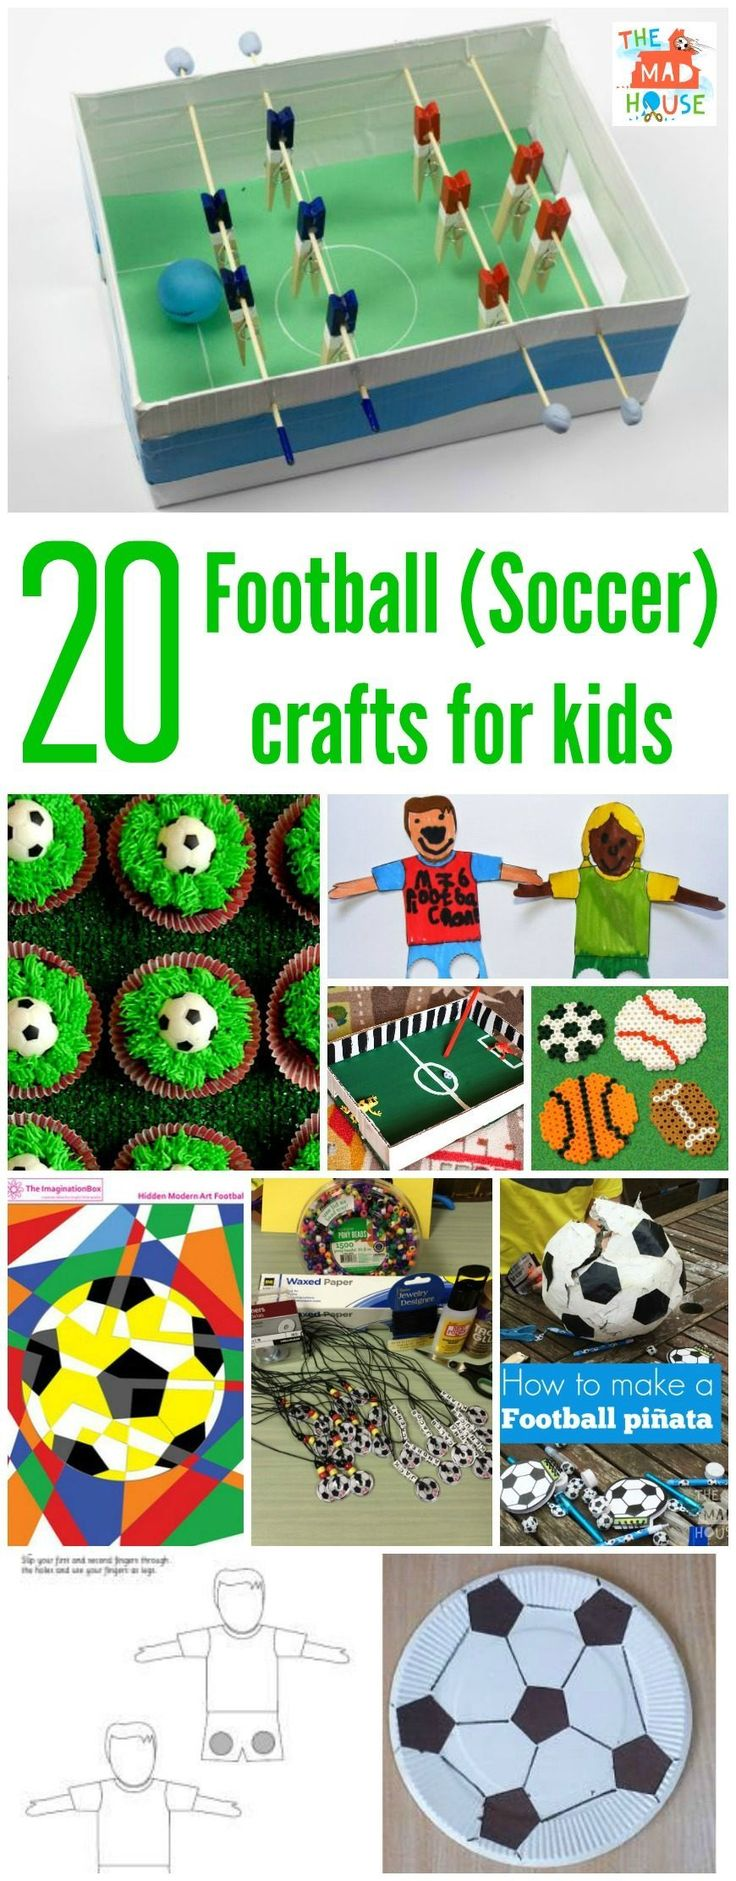 Over 20 fab football crafts or soccer crafts for kids.  Celebrate the beautiful game with these fun and easy to prepare crafts and activities for children.  Lots of crafts, activities and education games all with a soccer or football theme.  Get your DIY on and craft with the kids.